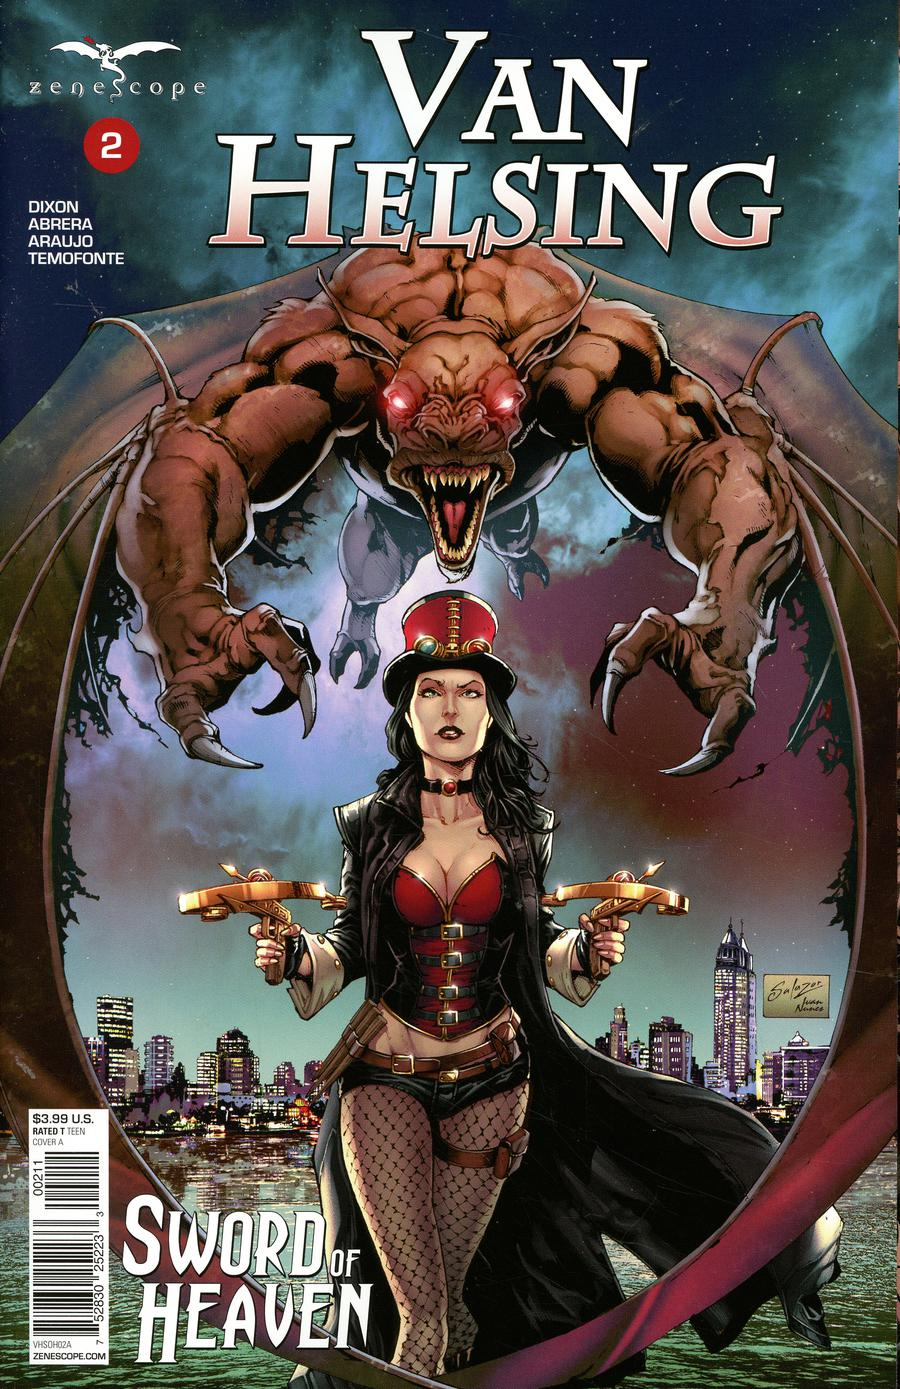 Grimm Fairy Tales Presents Van Helsing Sword Of Heaven #2 Cover A Edgar Salazar